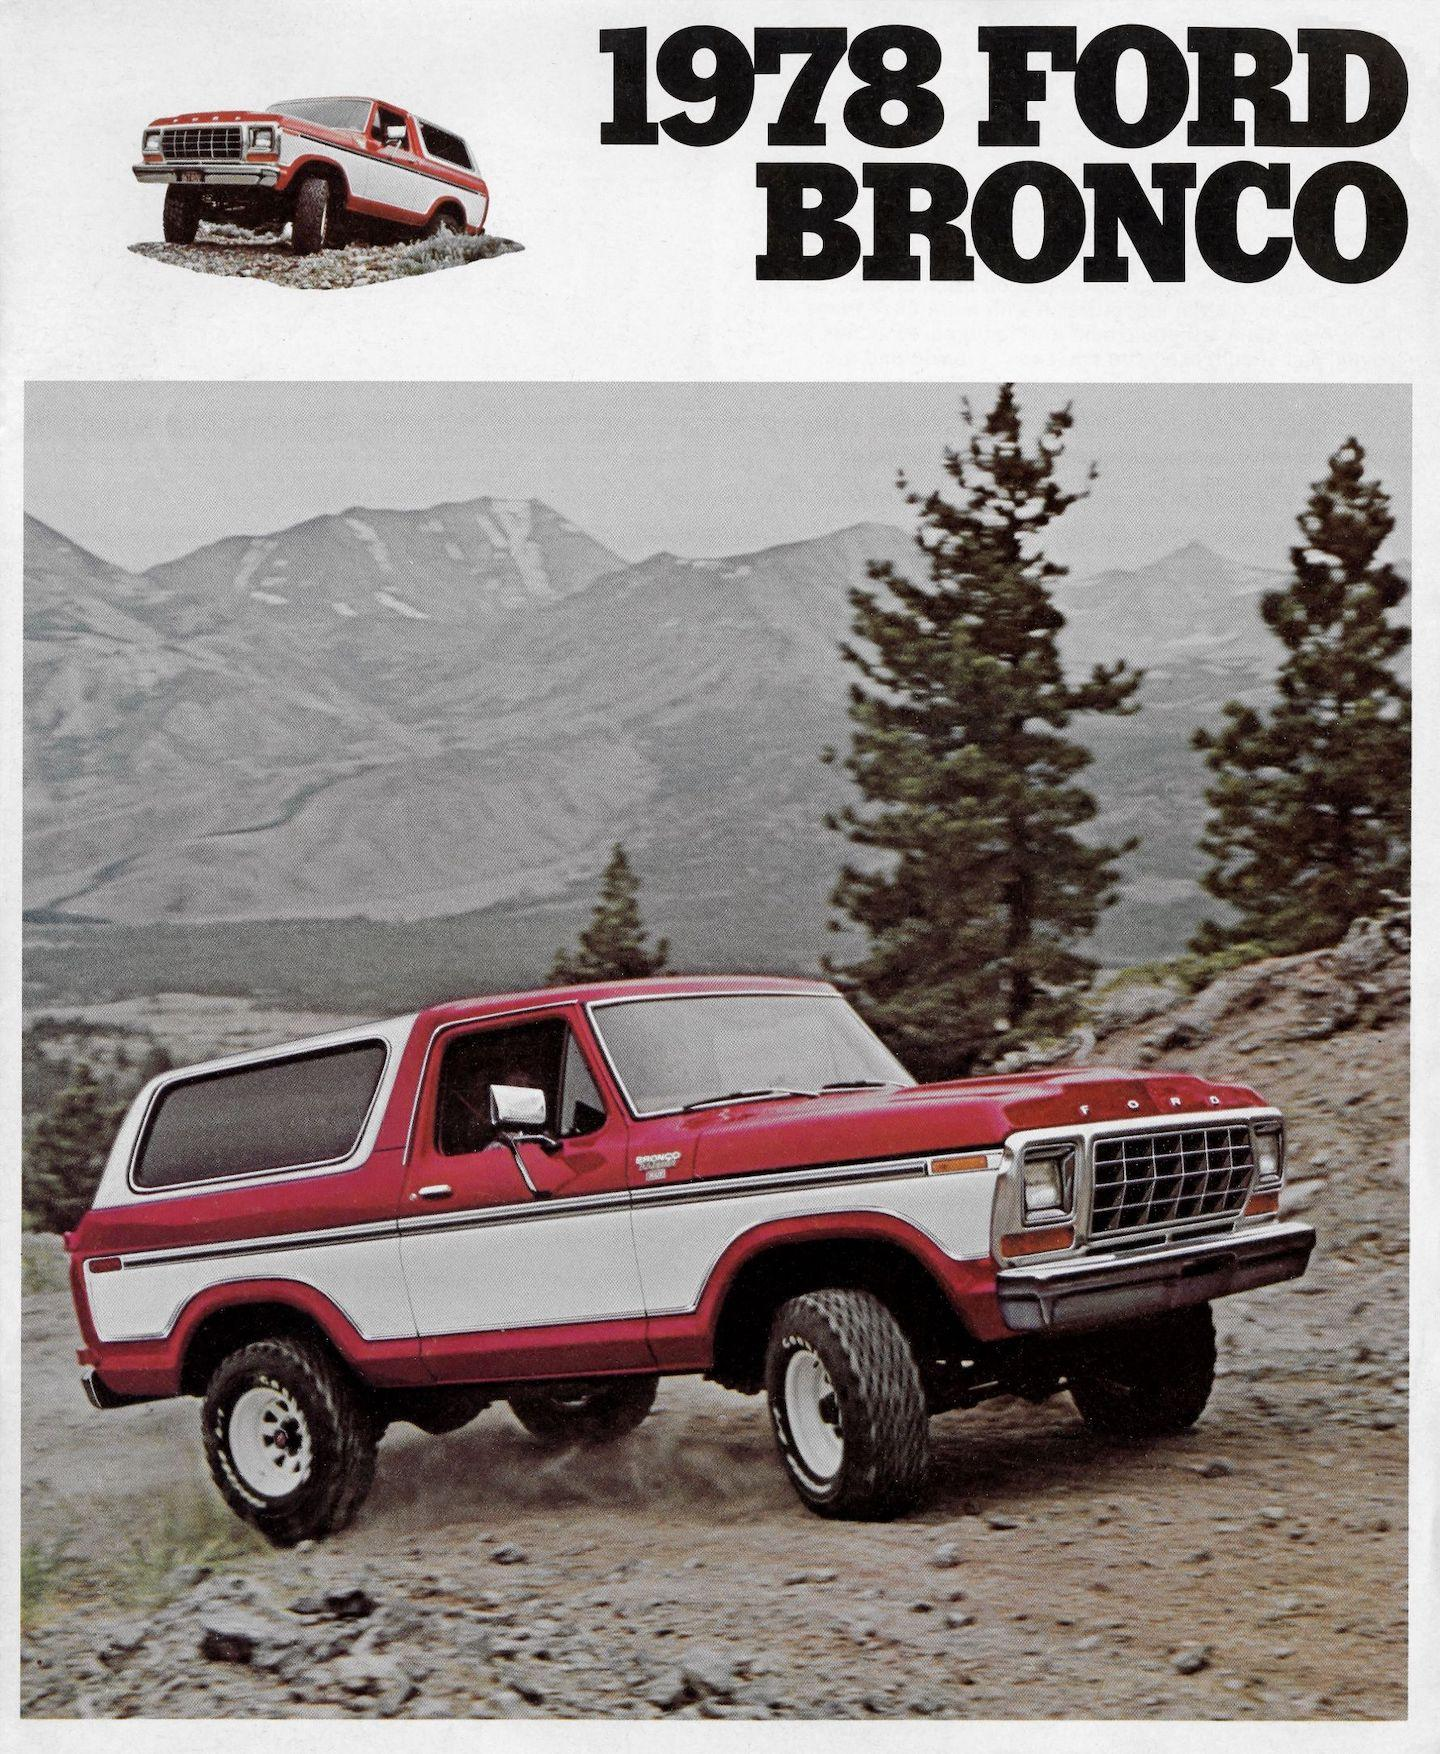 Ford Bronco, second-generation Ford Bronco, second-generation Bronco, Ford Bronco